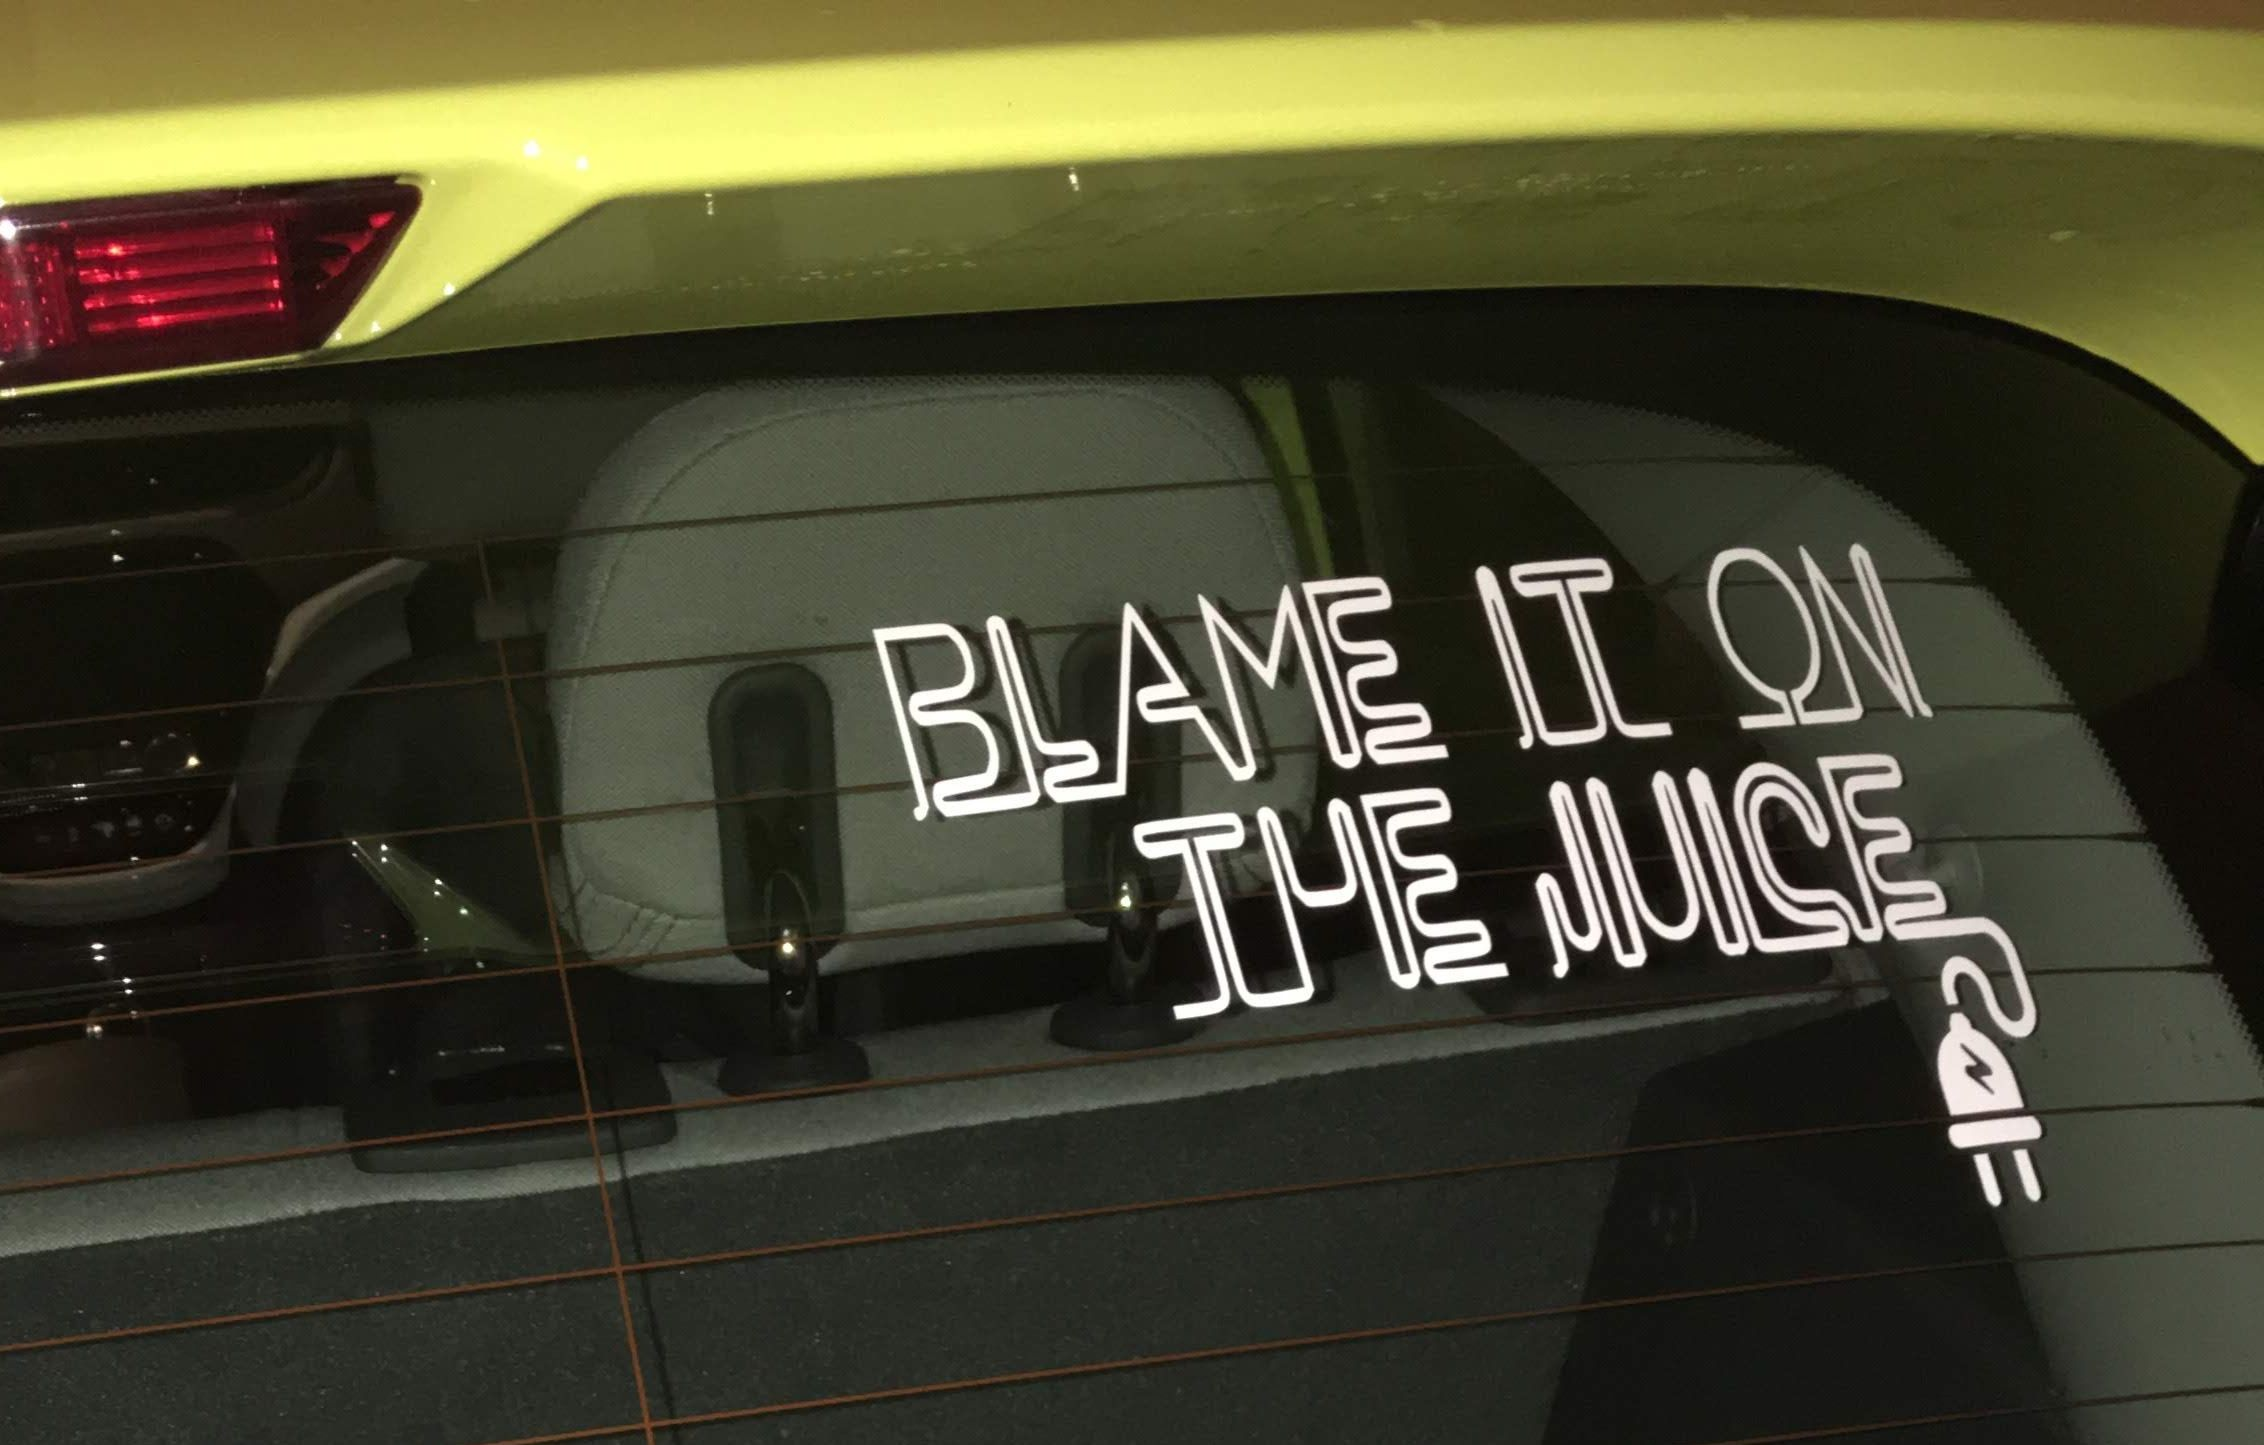 Blame It On The Juice Funky Electric Vehicle Vinyl Decal Etsy Electric Cars Vinyl Decals Fantasy Cars [ 1445 x 2264 Pixel ]